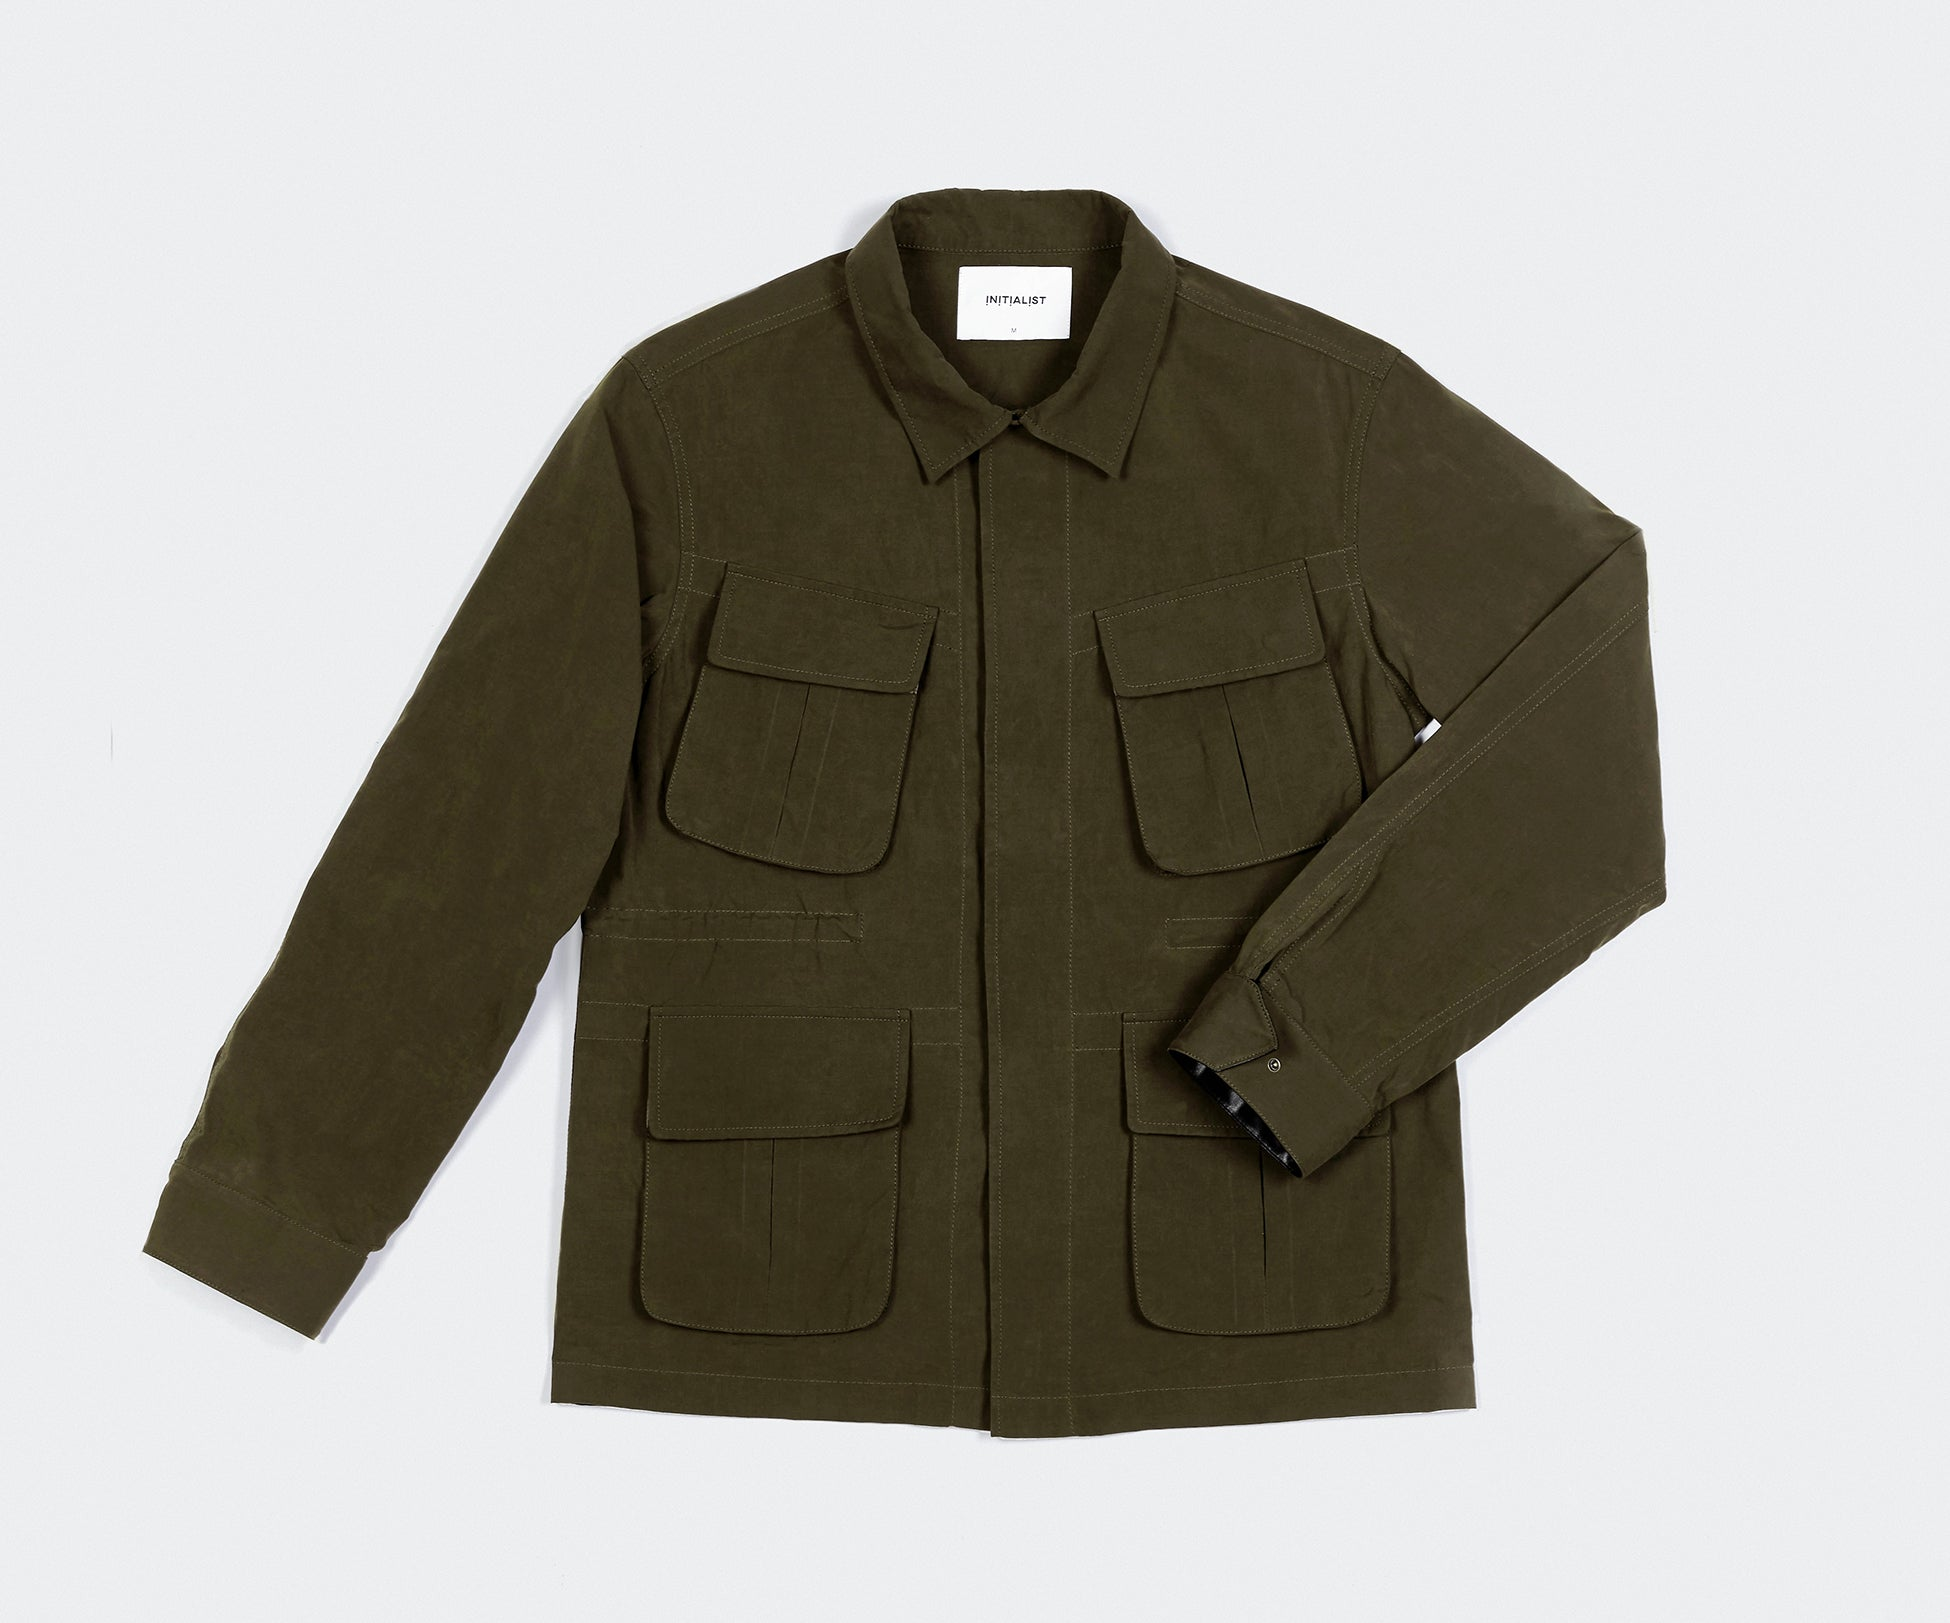 veste m-51 the iconic military jacket